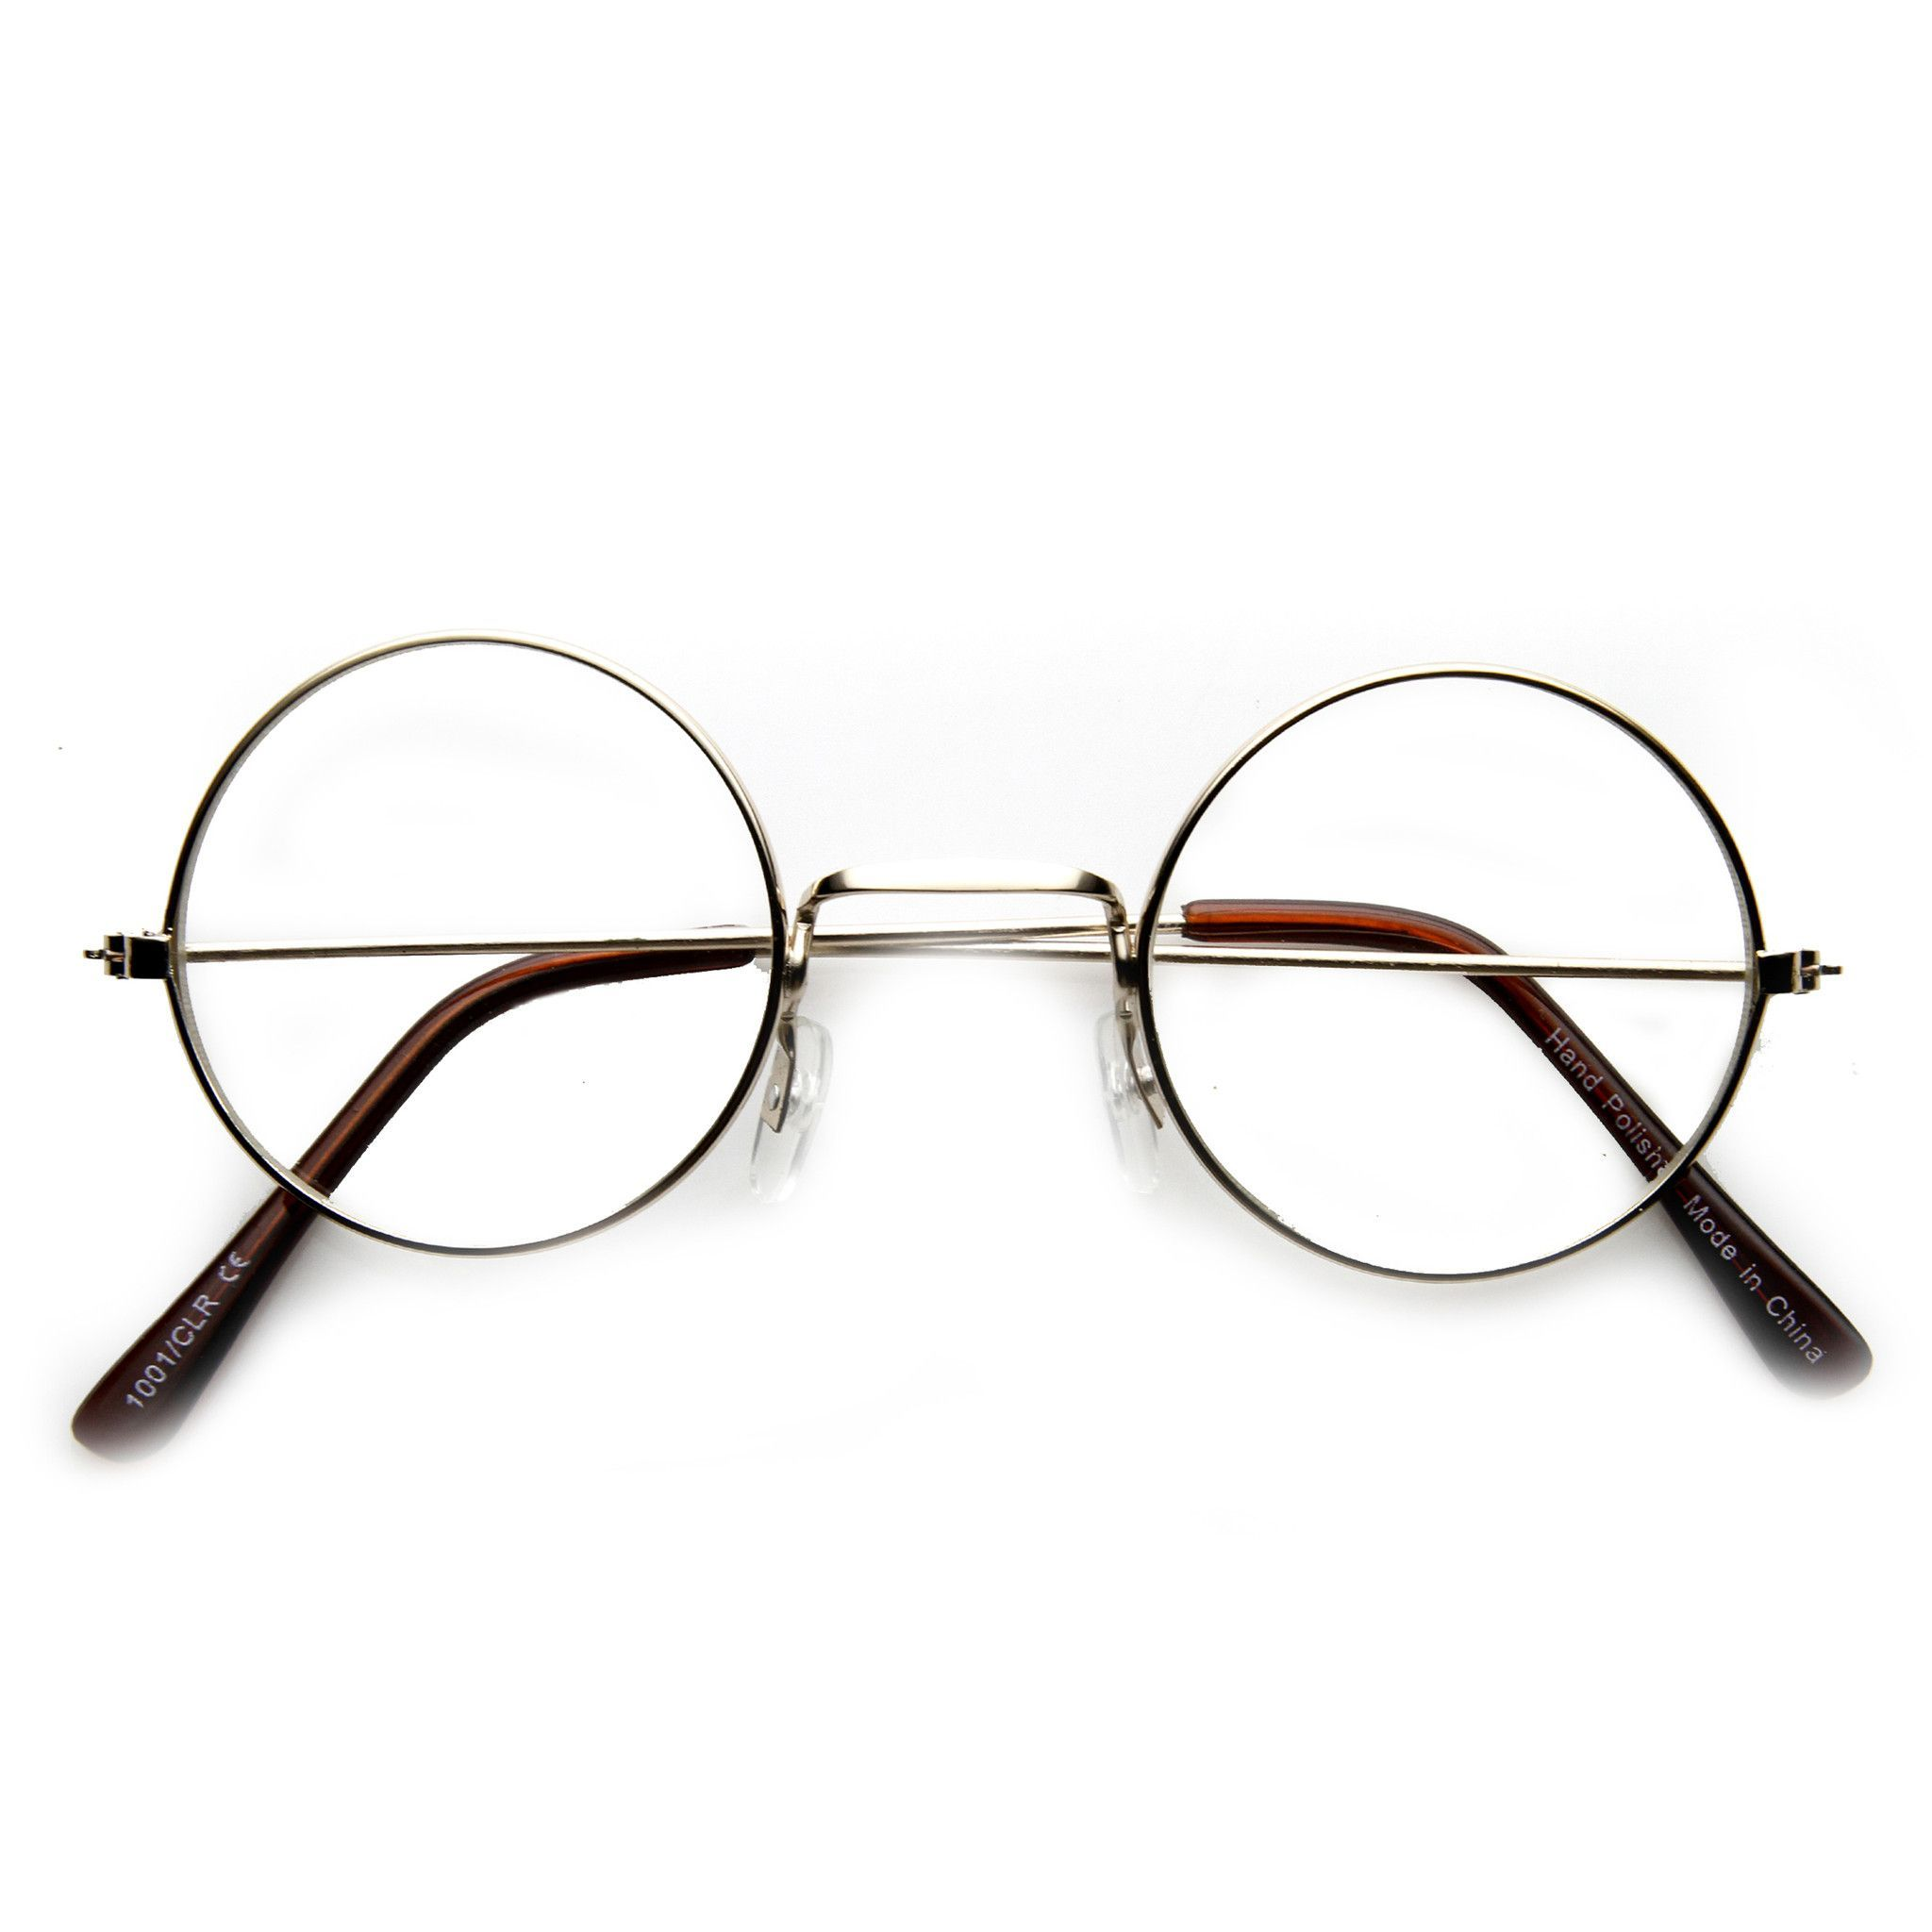 d5b0dccd0c Vintage Inspired Round Metal Frame Clear Lens Glasses - zeroUV